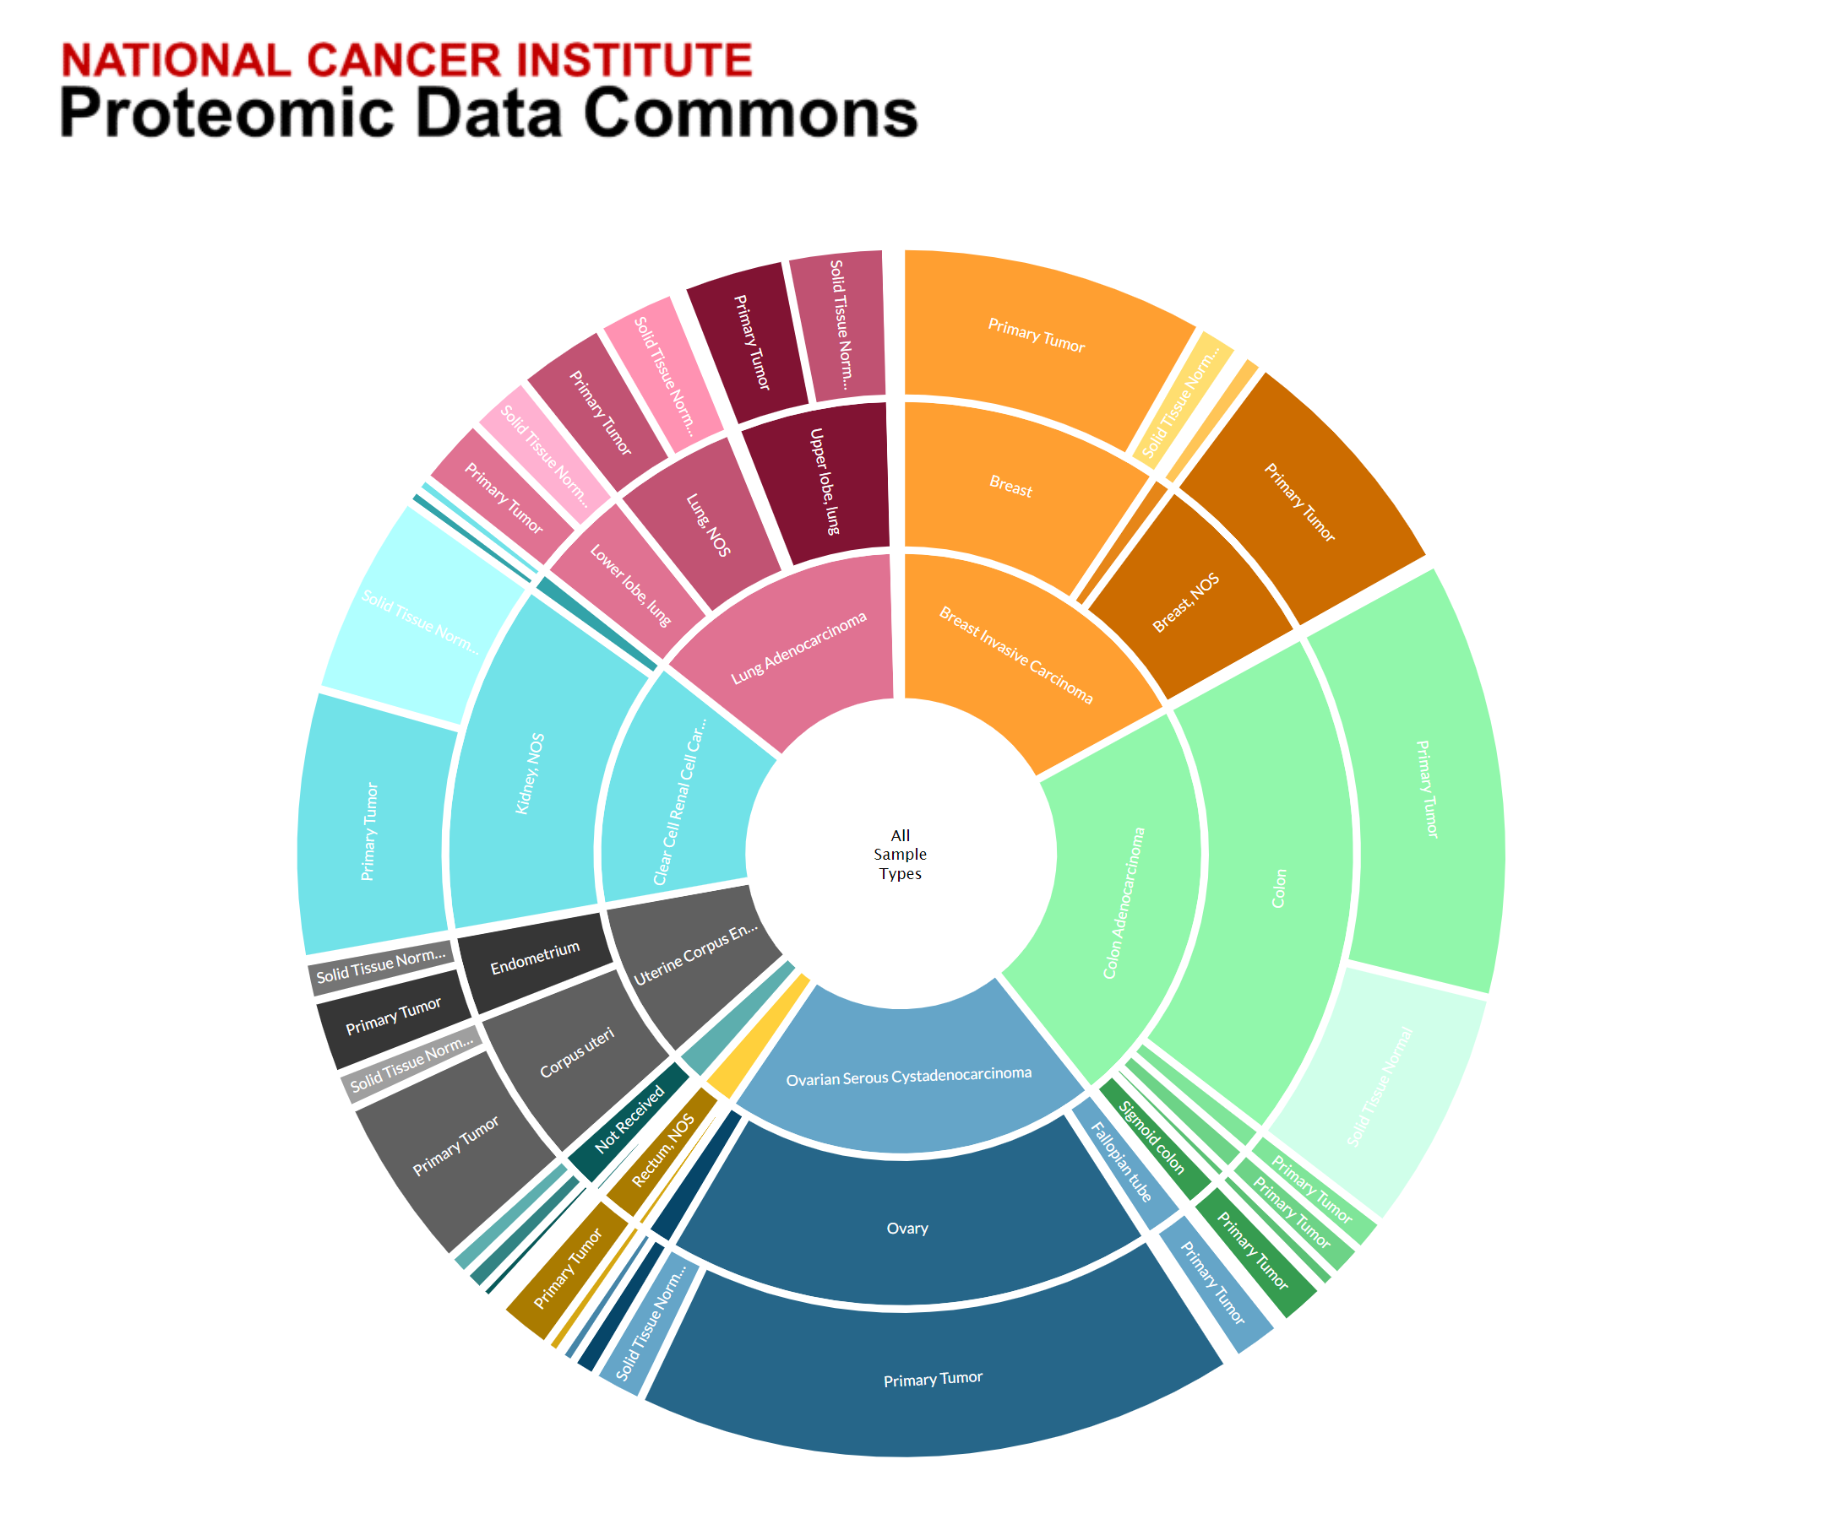 Graphic of the National Cancer Institute Proteomic Data Commons (PDC) identifying the 1,529 sample types included in the PDC.